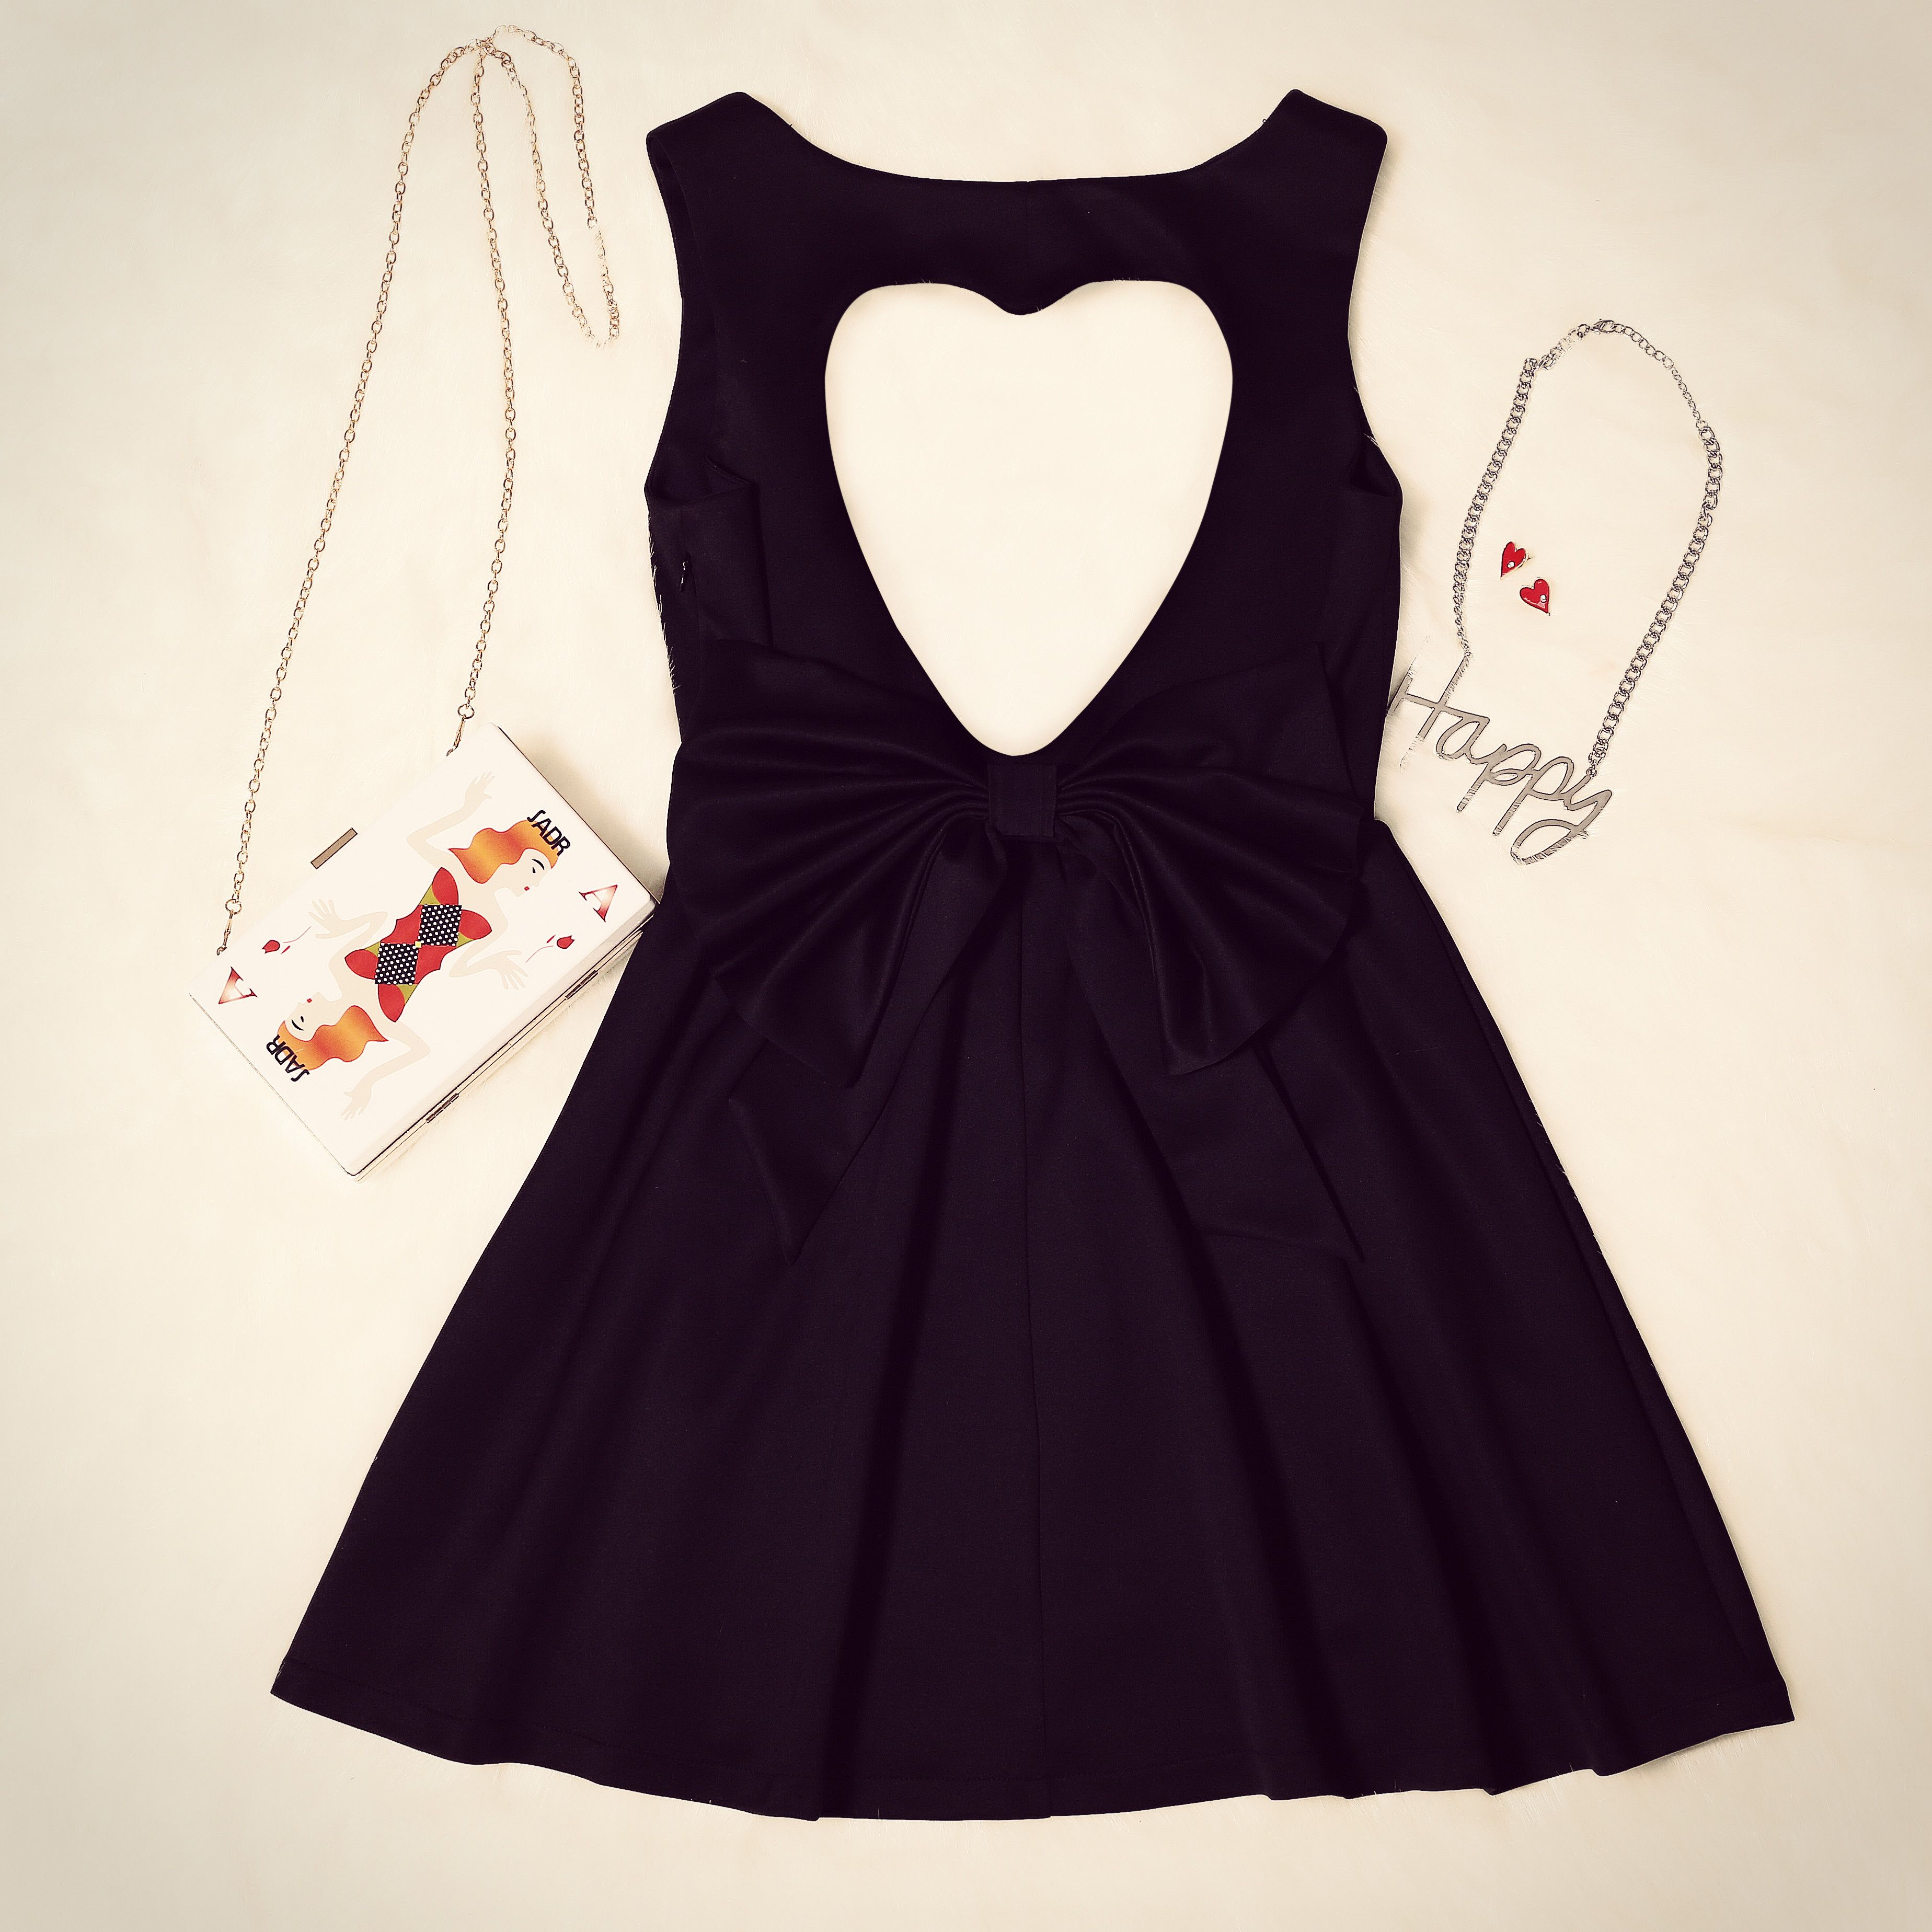 New Design for Valentine's Day  Will be launched on Jan. 14  #Valentine'sDayDress #RomweDesign